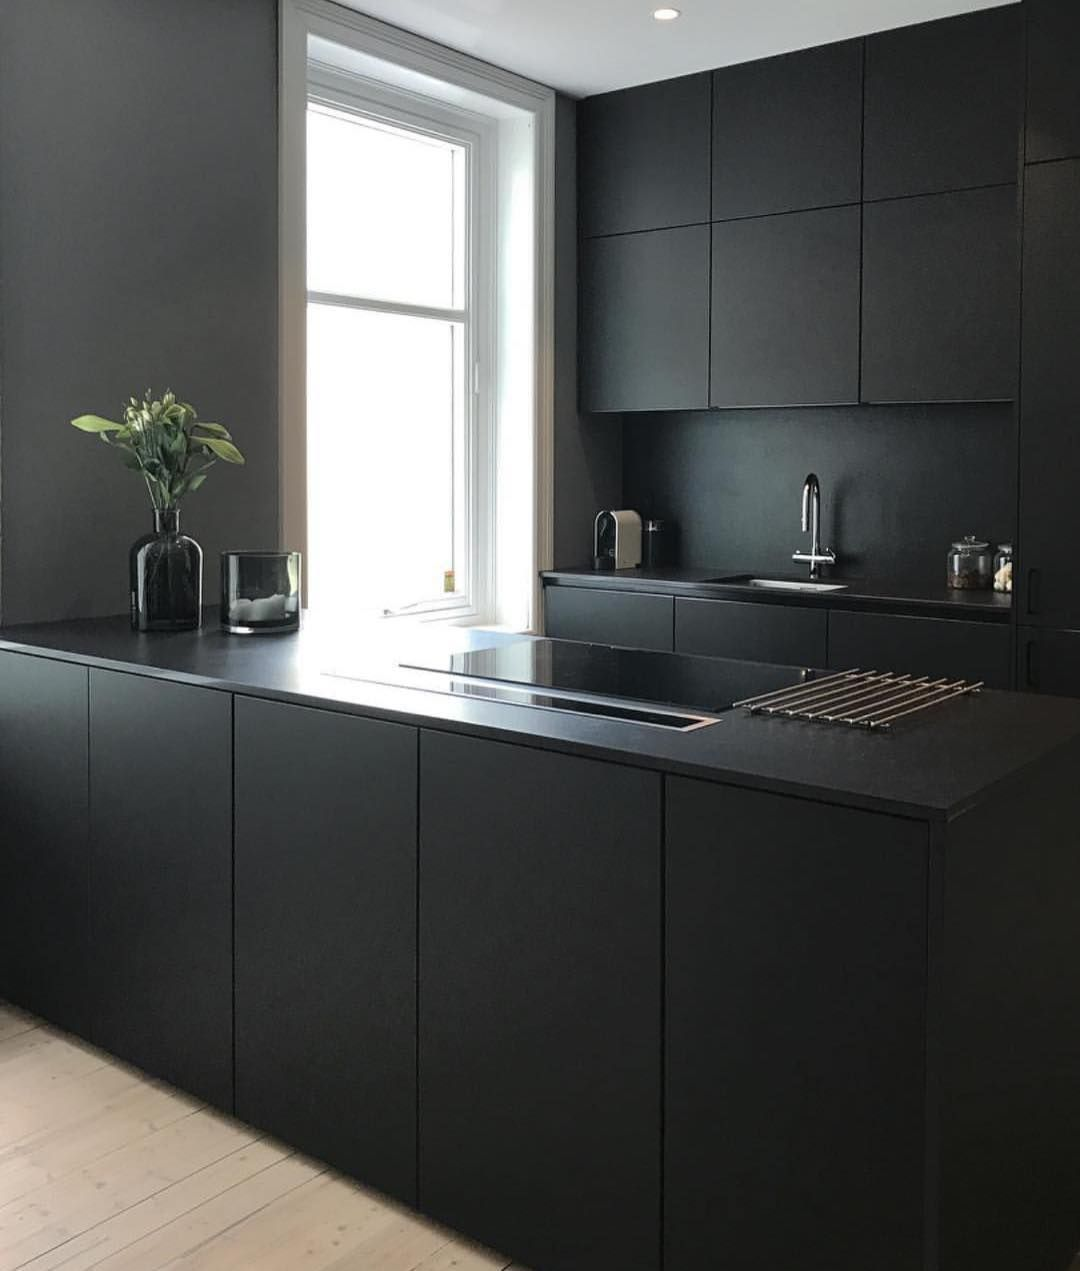 Not Often That Your See An All Black Kitchen Contemporary